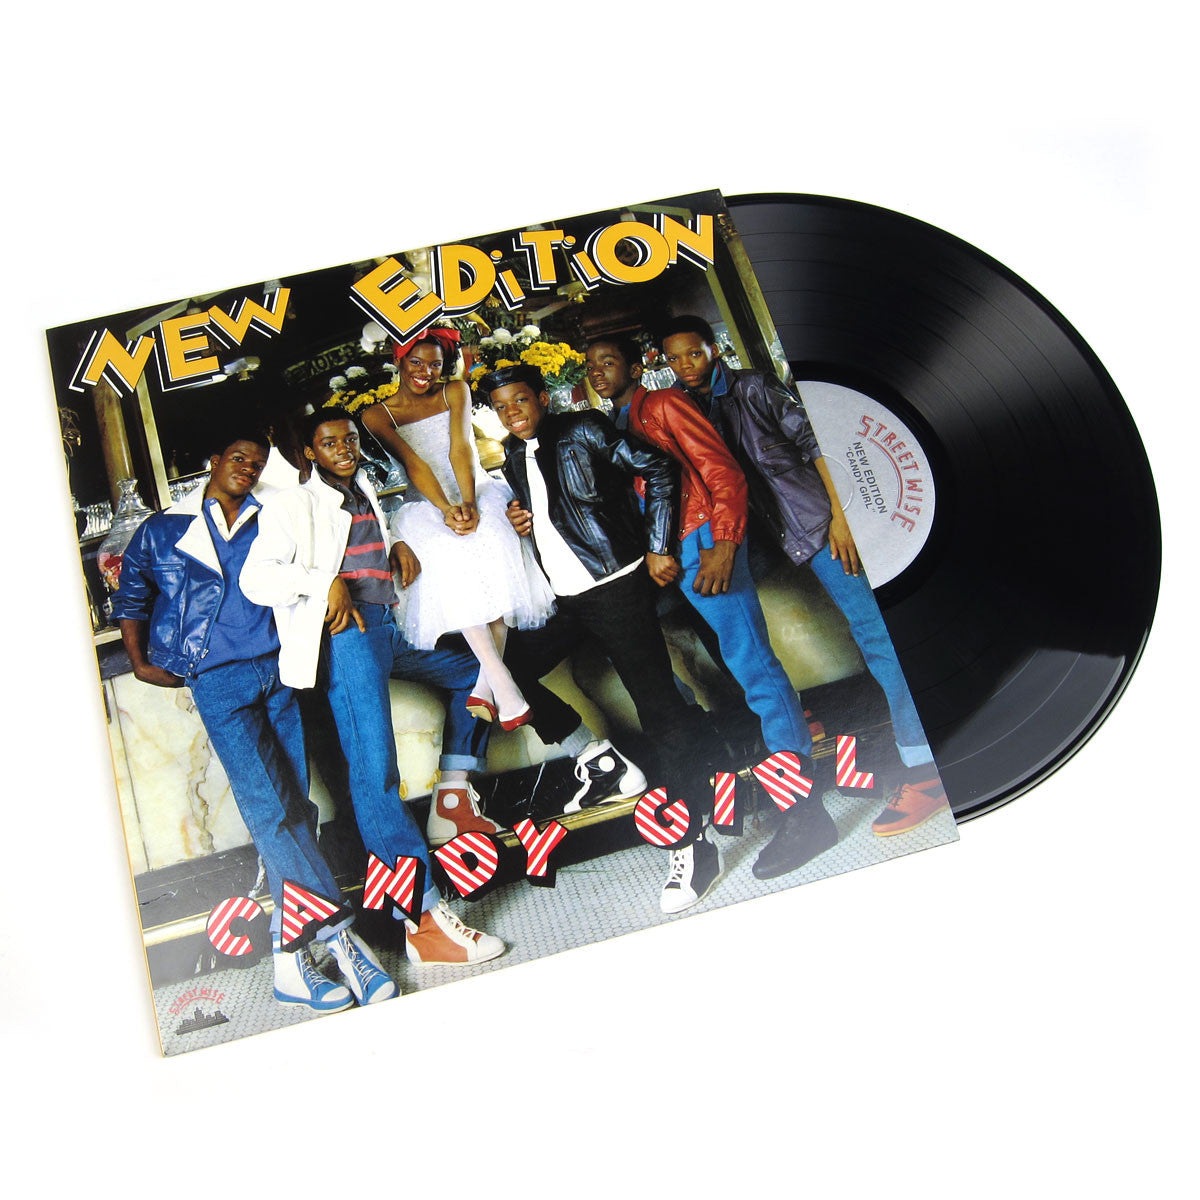 New Edition: Candy Girl Vinyl LP